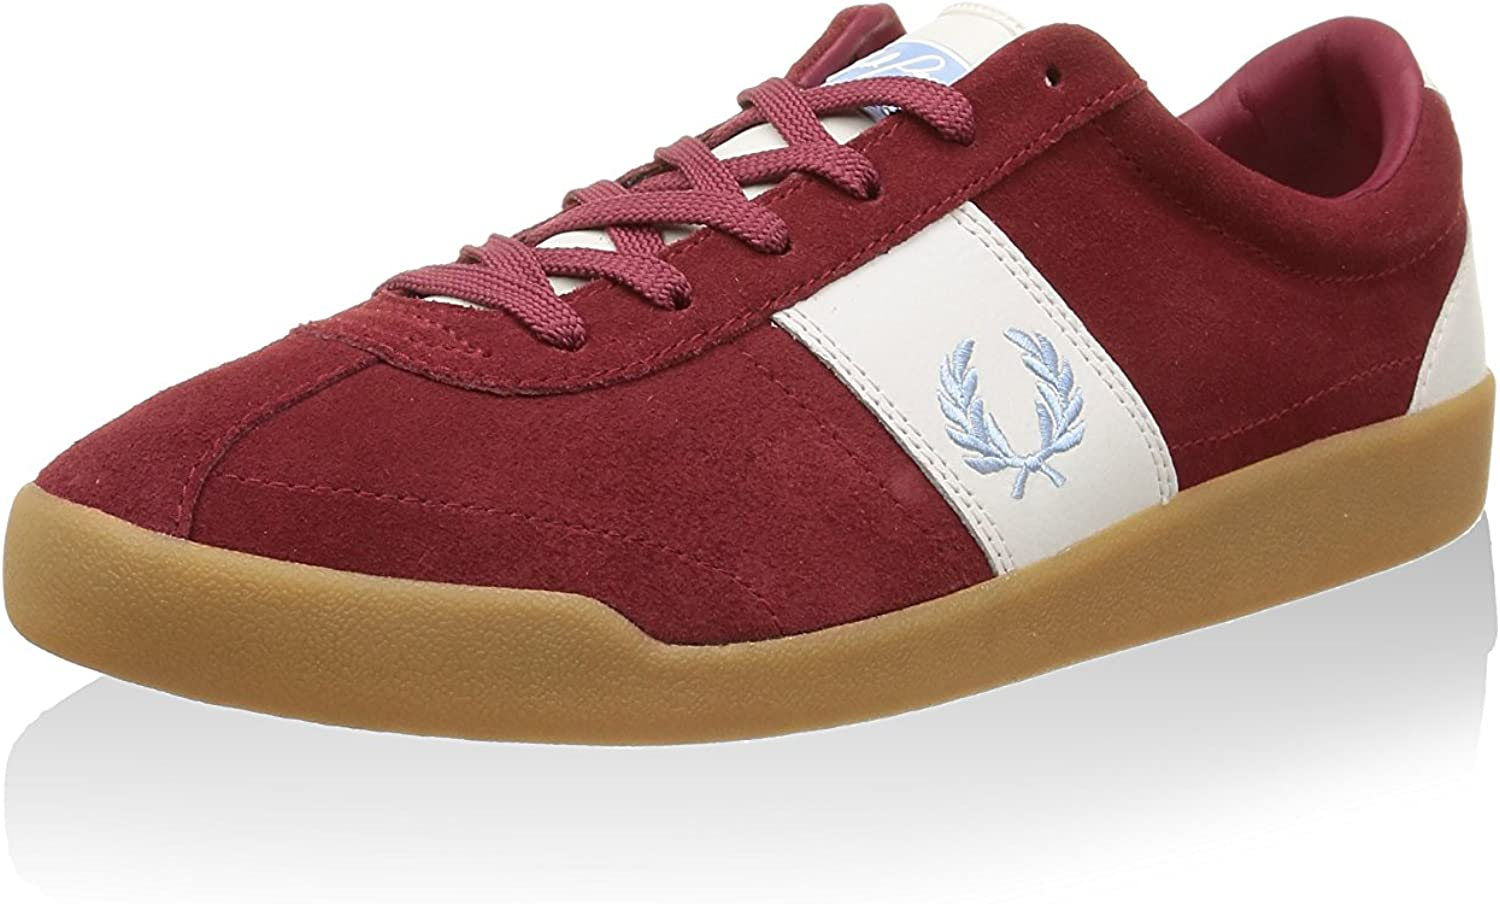 Fred Perry Stockport Suede Leather FP'82 Men's Trainers shoes B6263-106